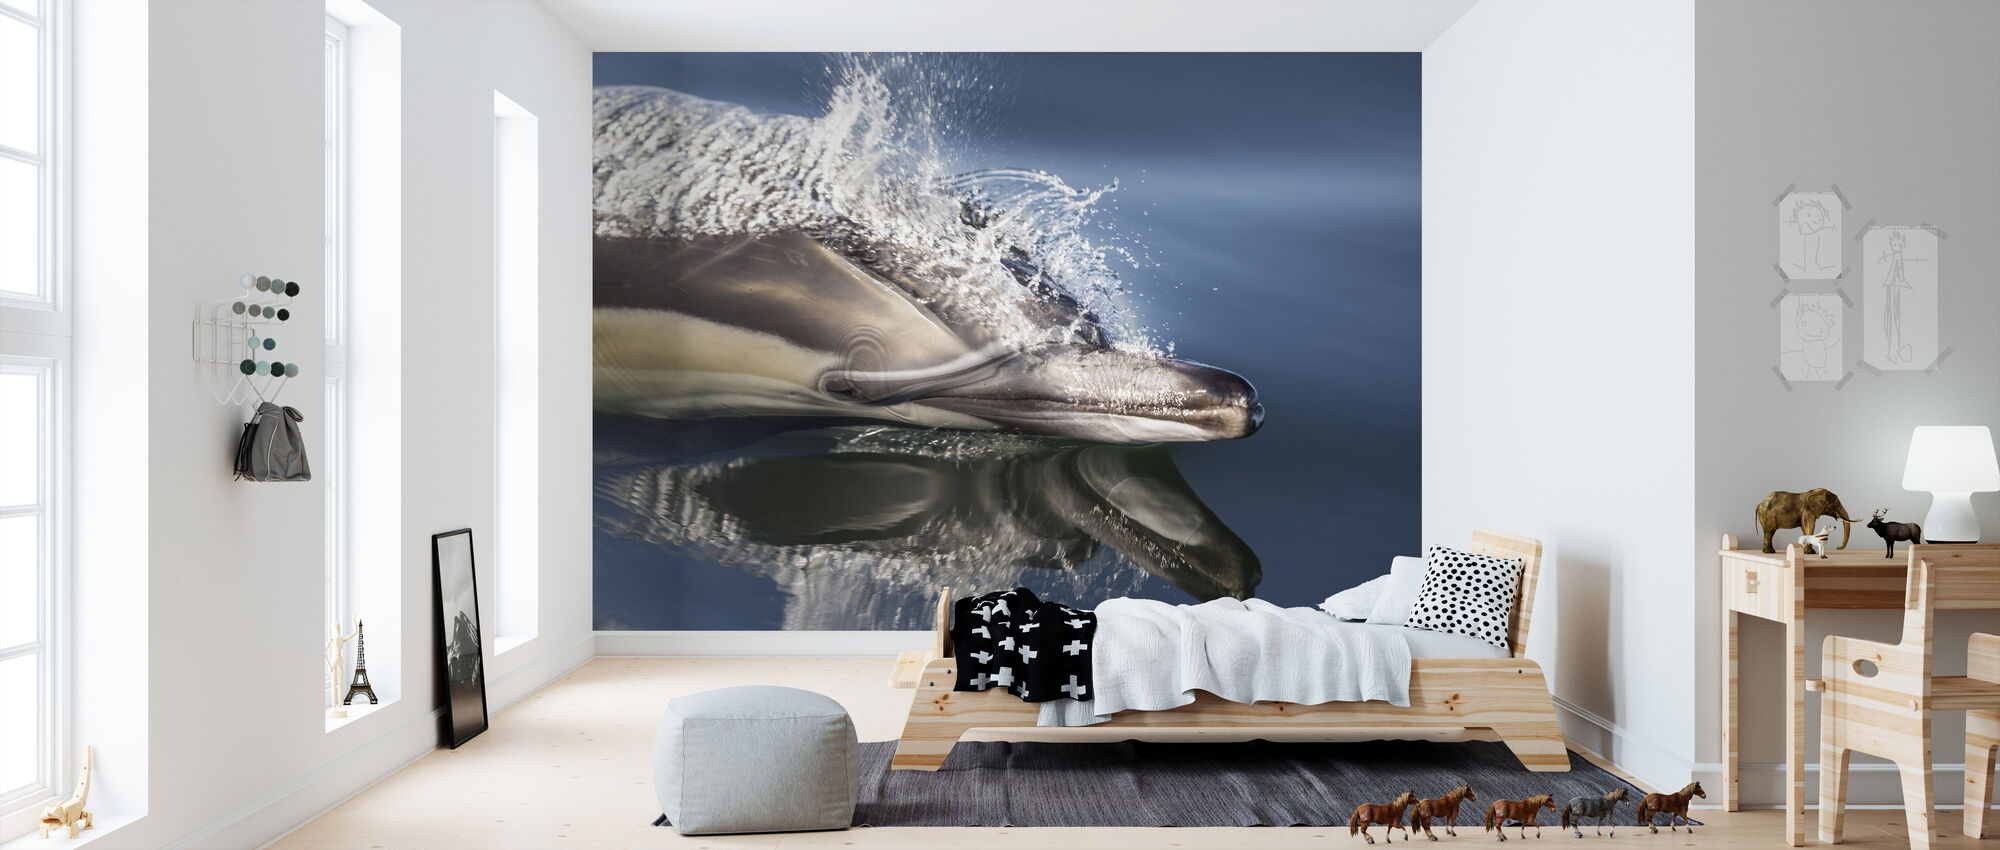 Long-beaked Dolphin - Wallpaper - Kids Room